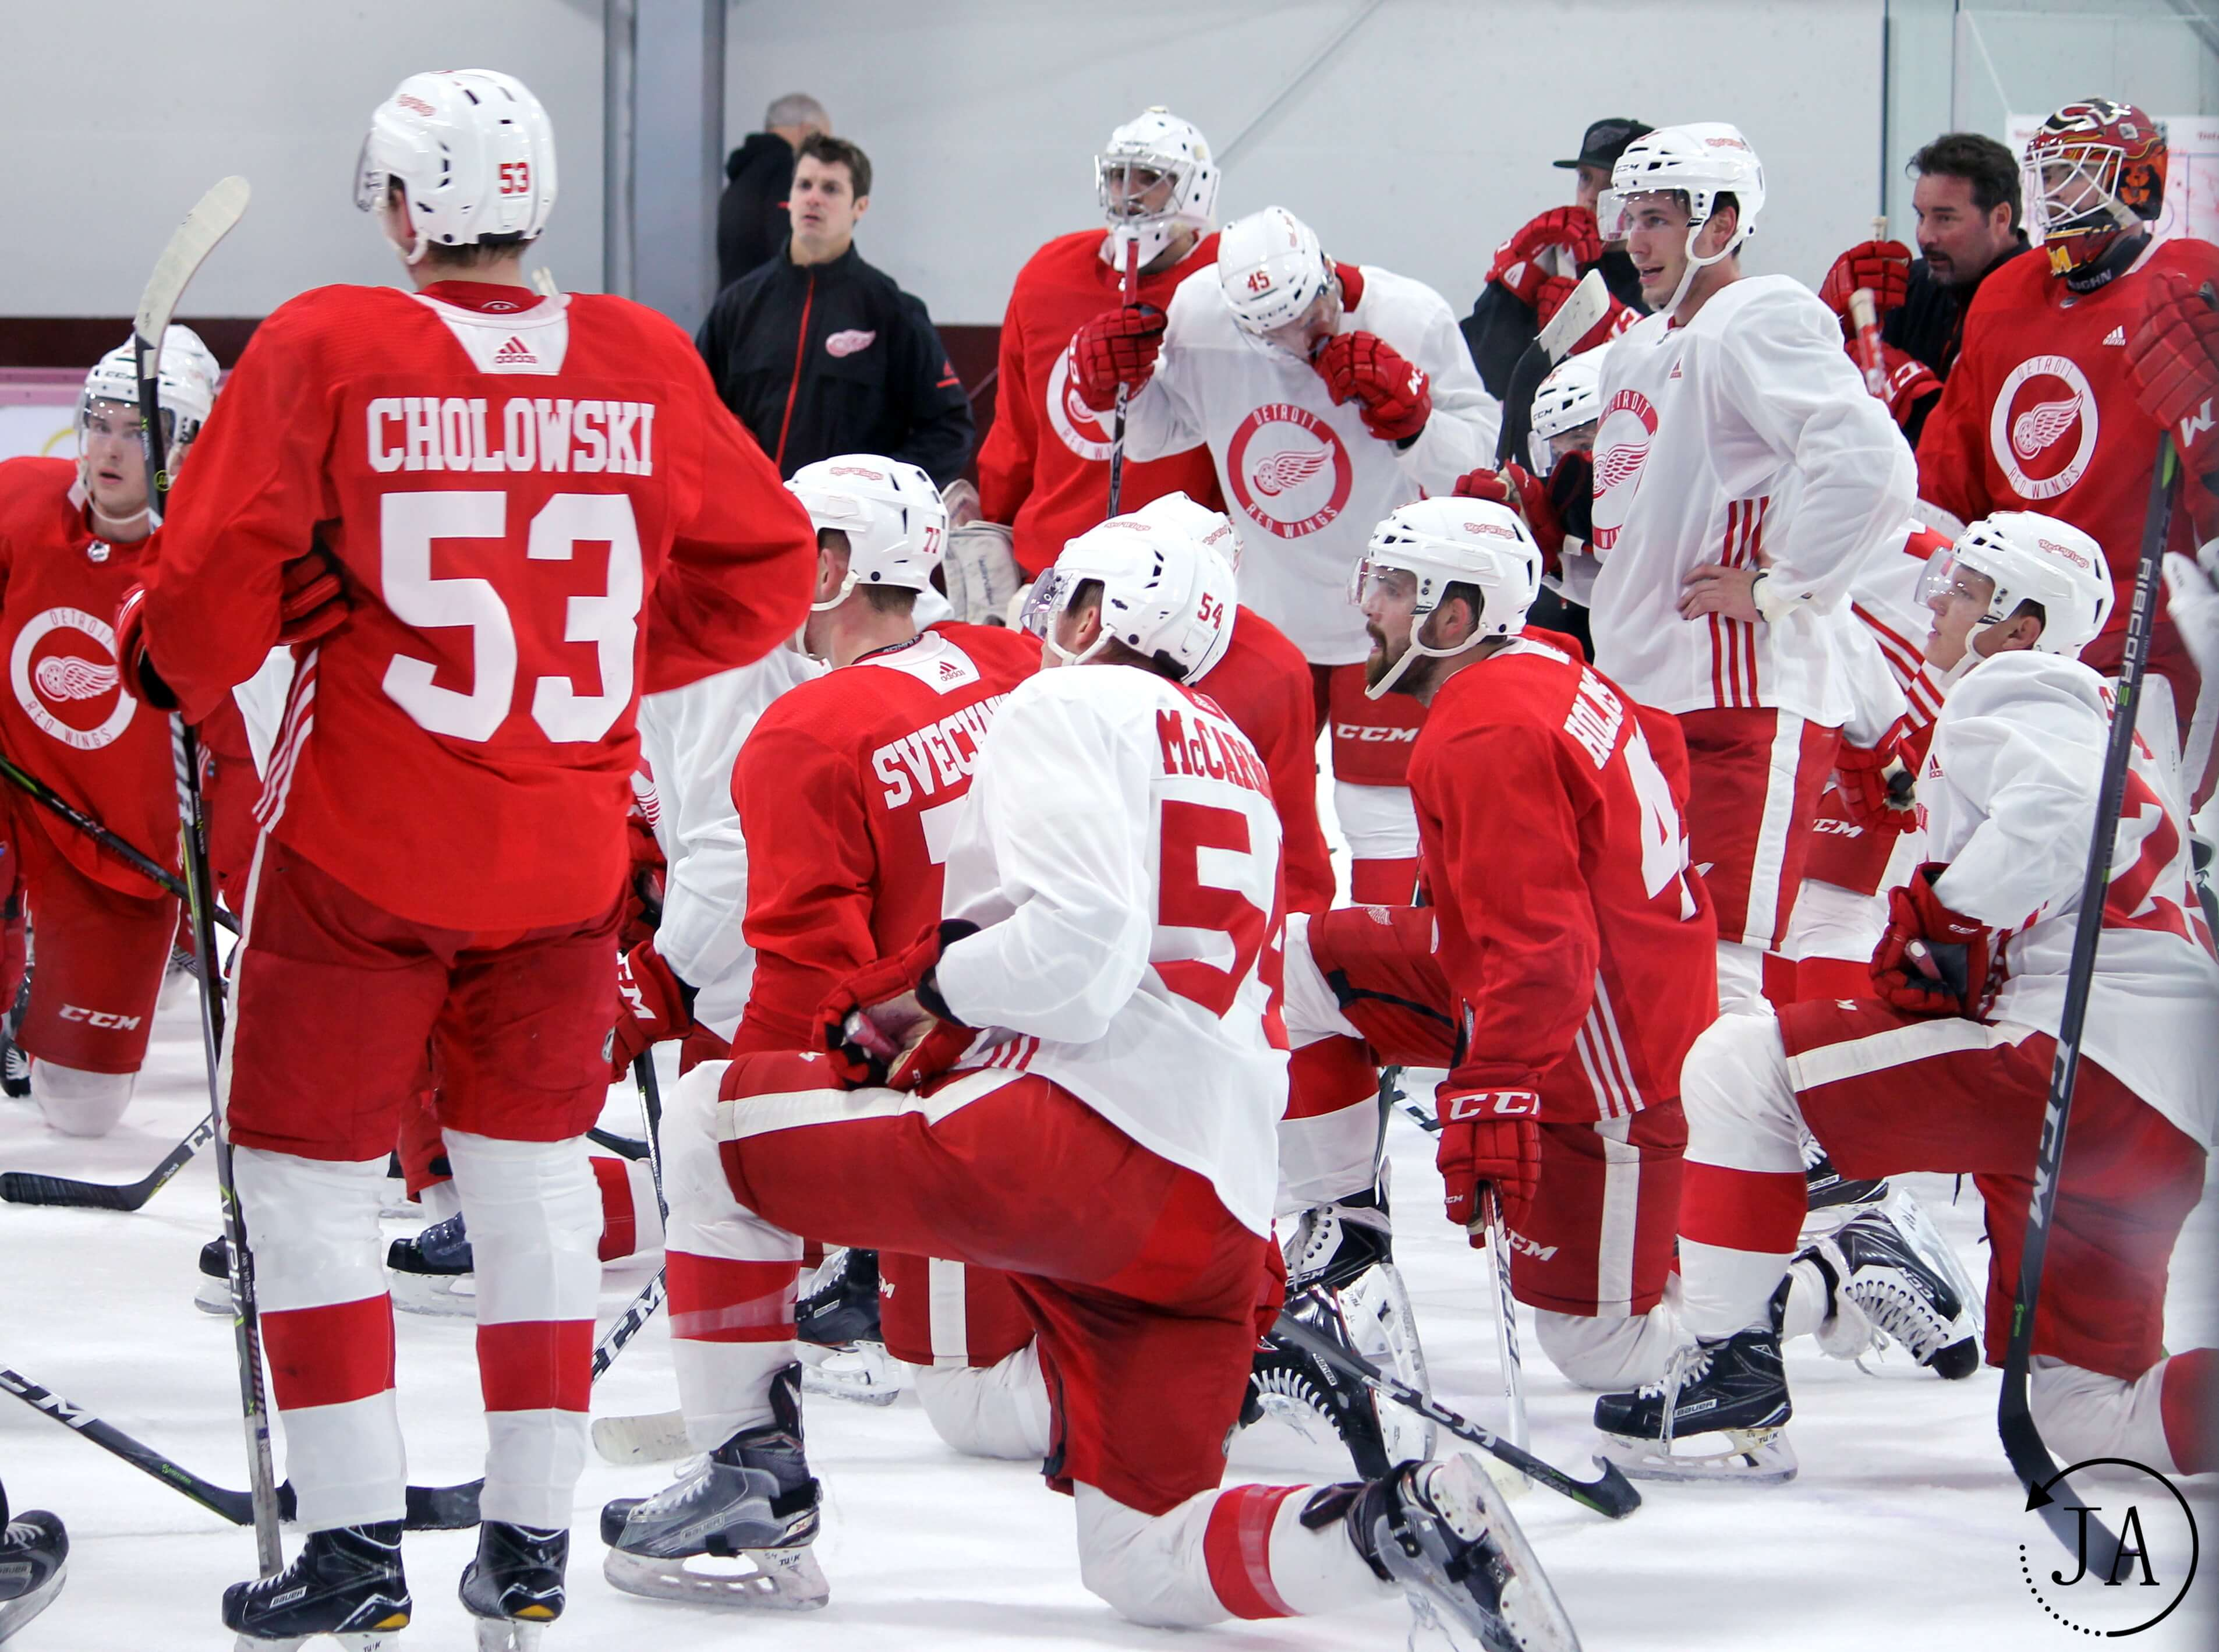 cholowski, prospect tournament, traverse city, detroit red wings